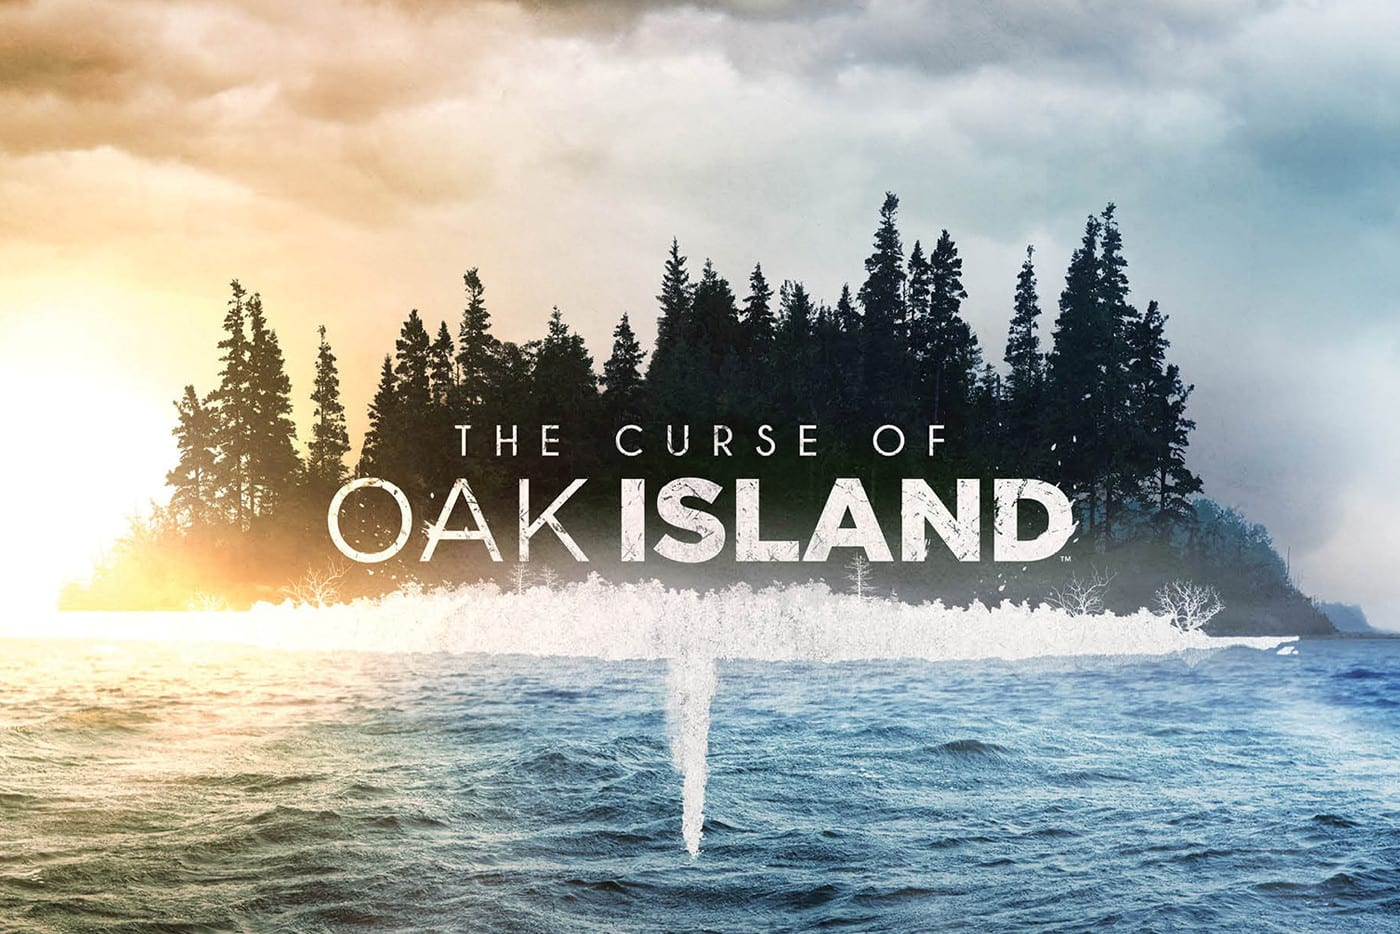 The Curse Of Oak Island Season 8 Plot, Casts and All You Need To Know